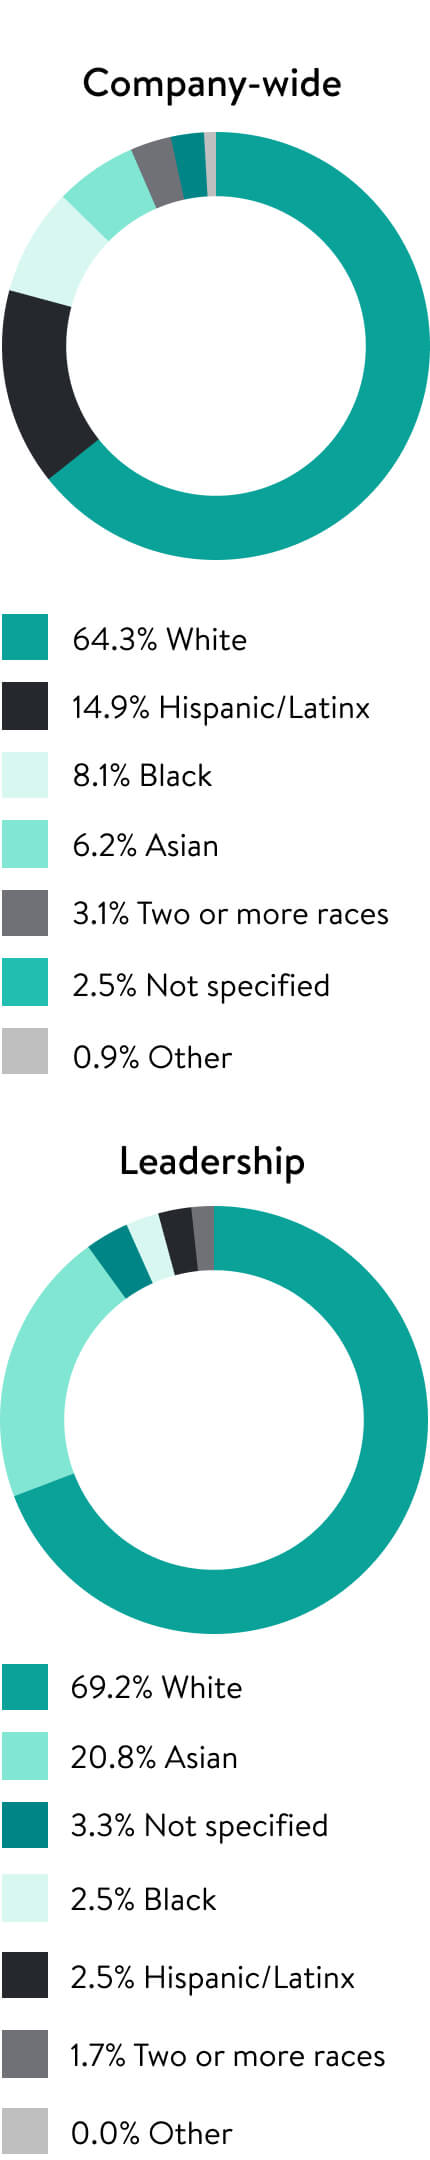 Two pie charts, one for company wide Racial/Ethnic Representation and one for Racial/Ethnic Representation in Leadership.